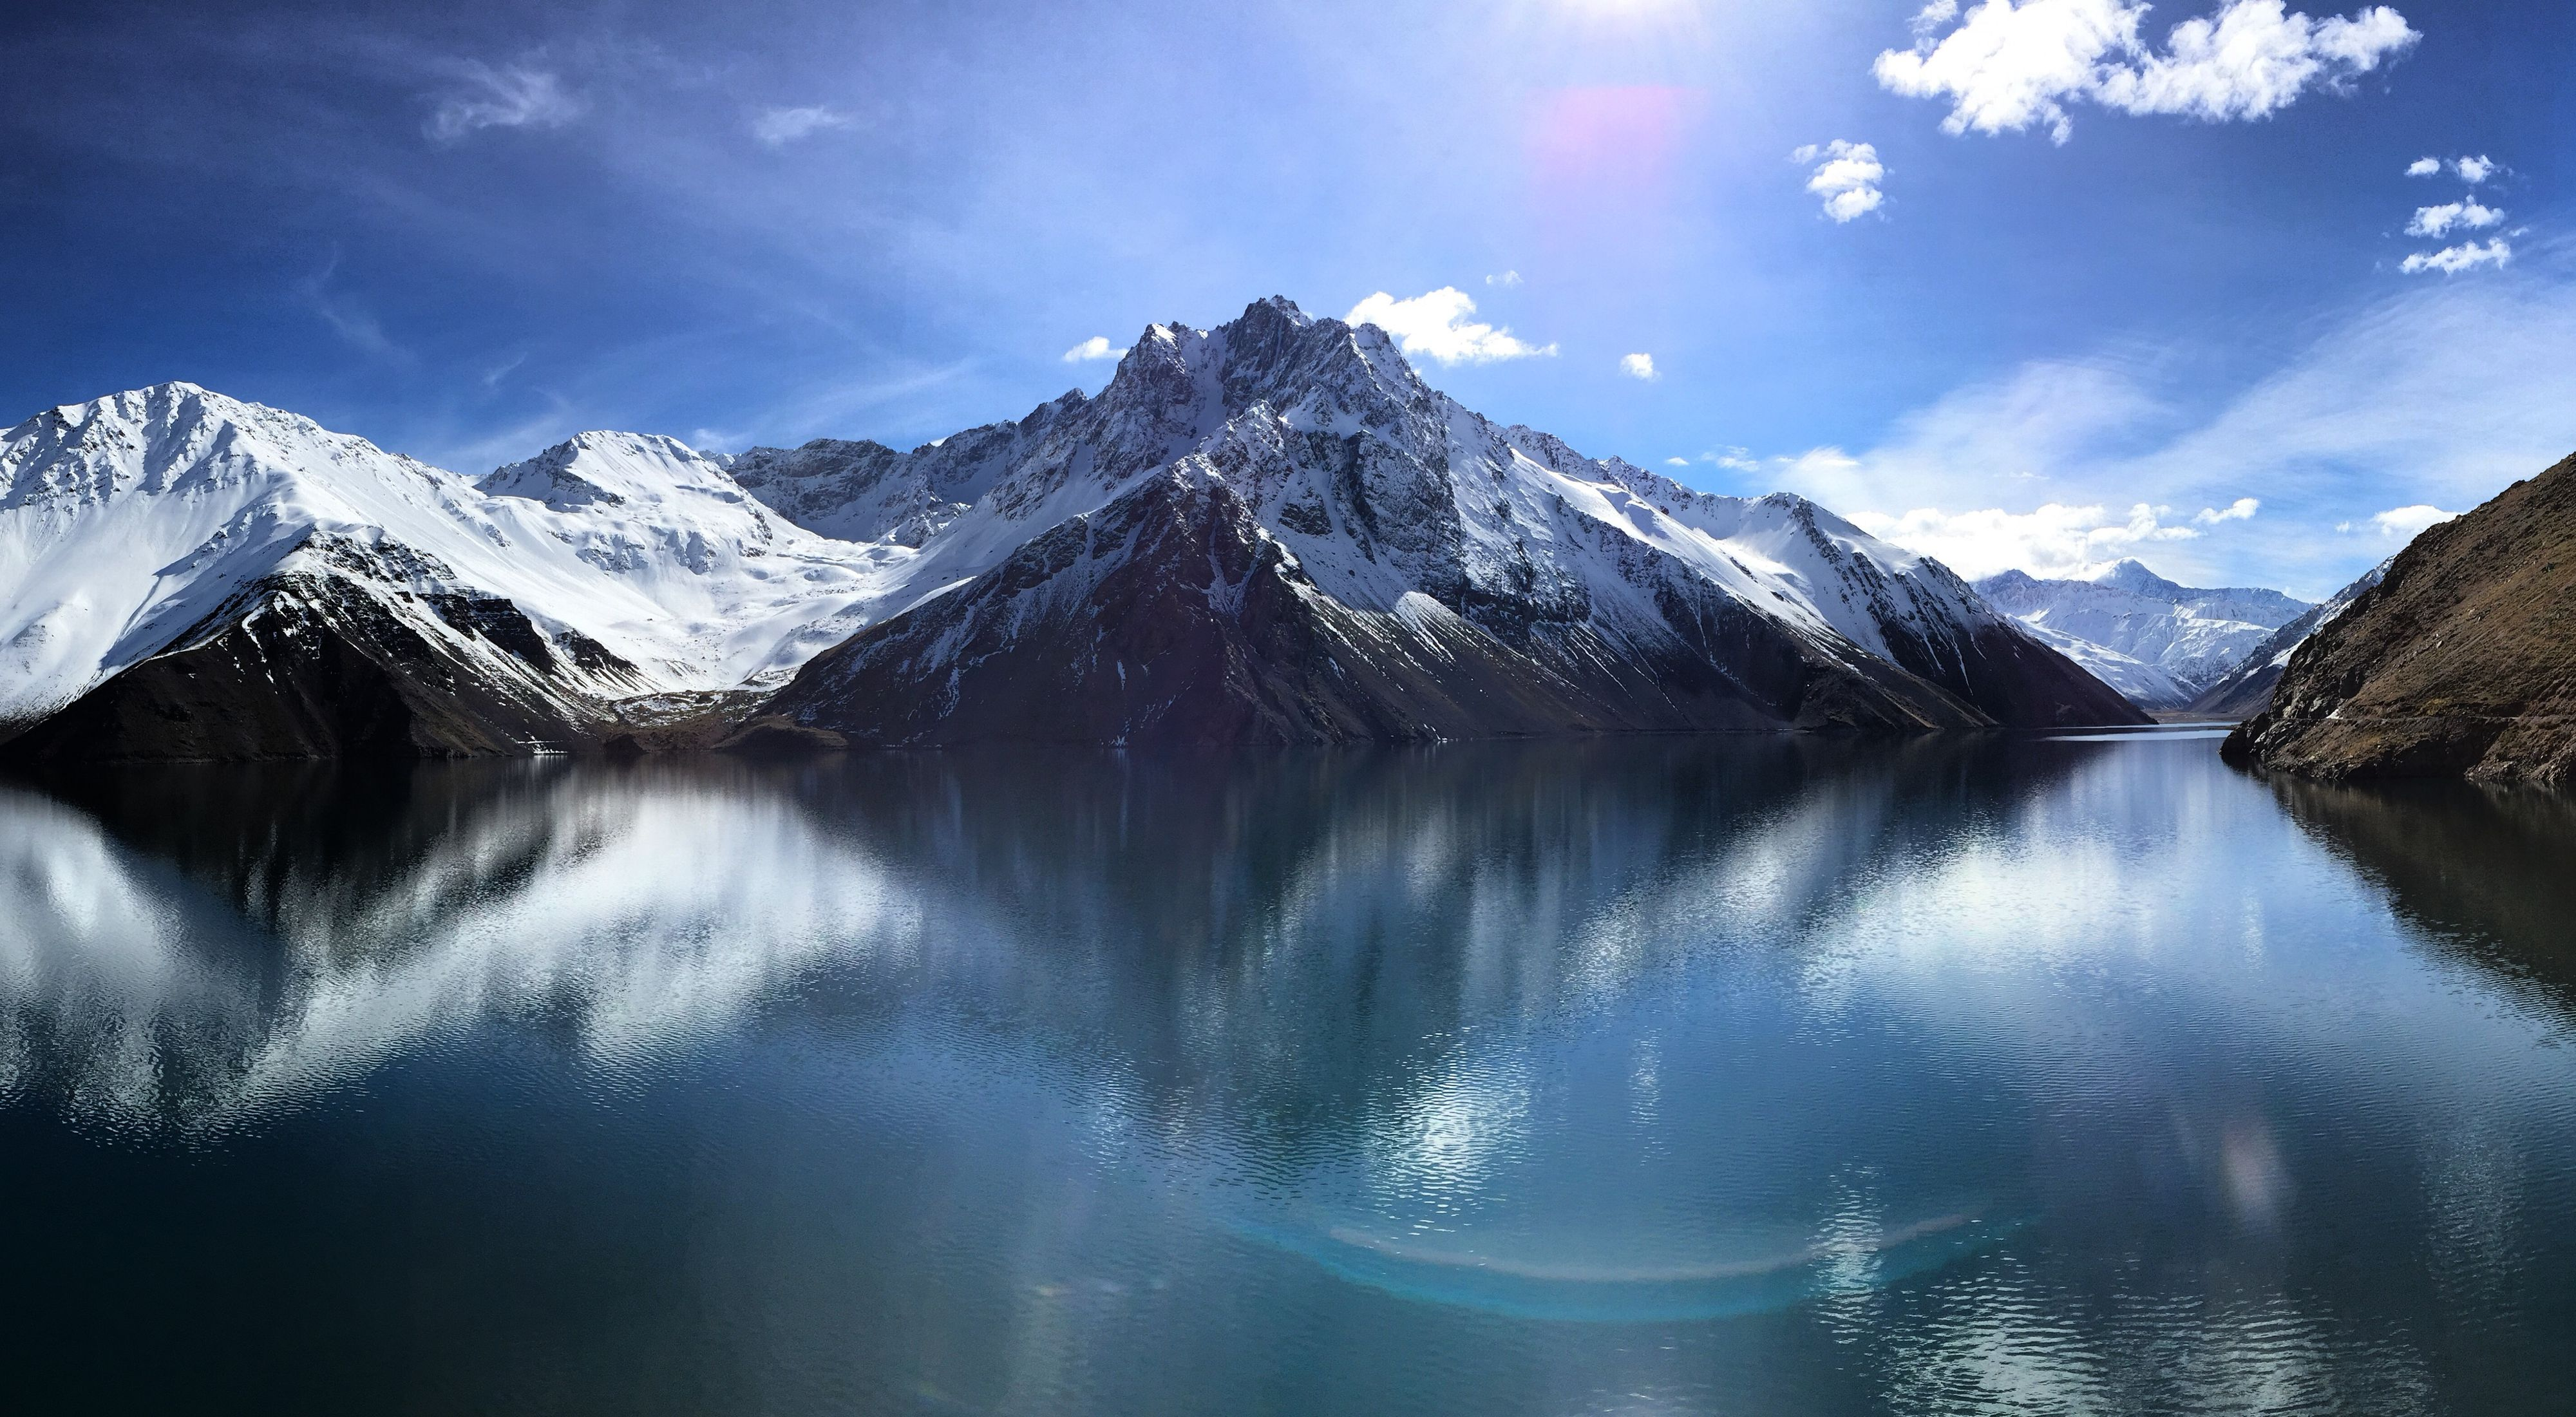 The Andes mountain